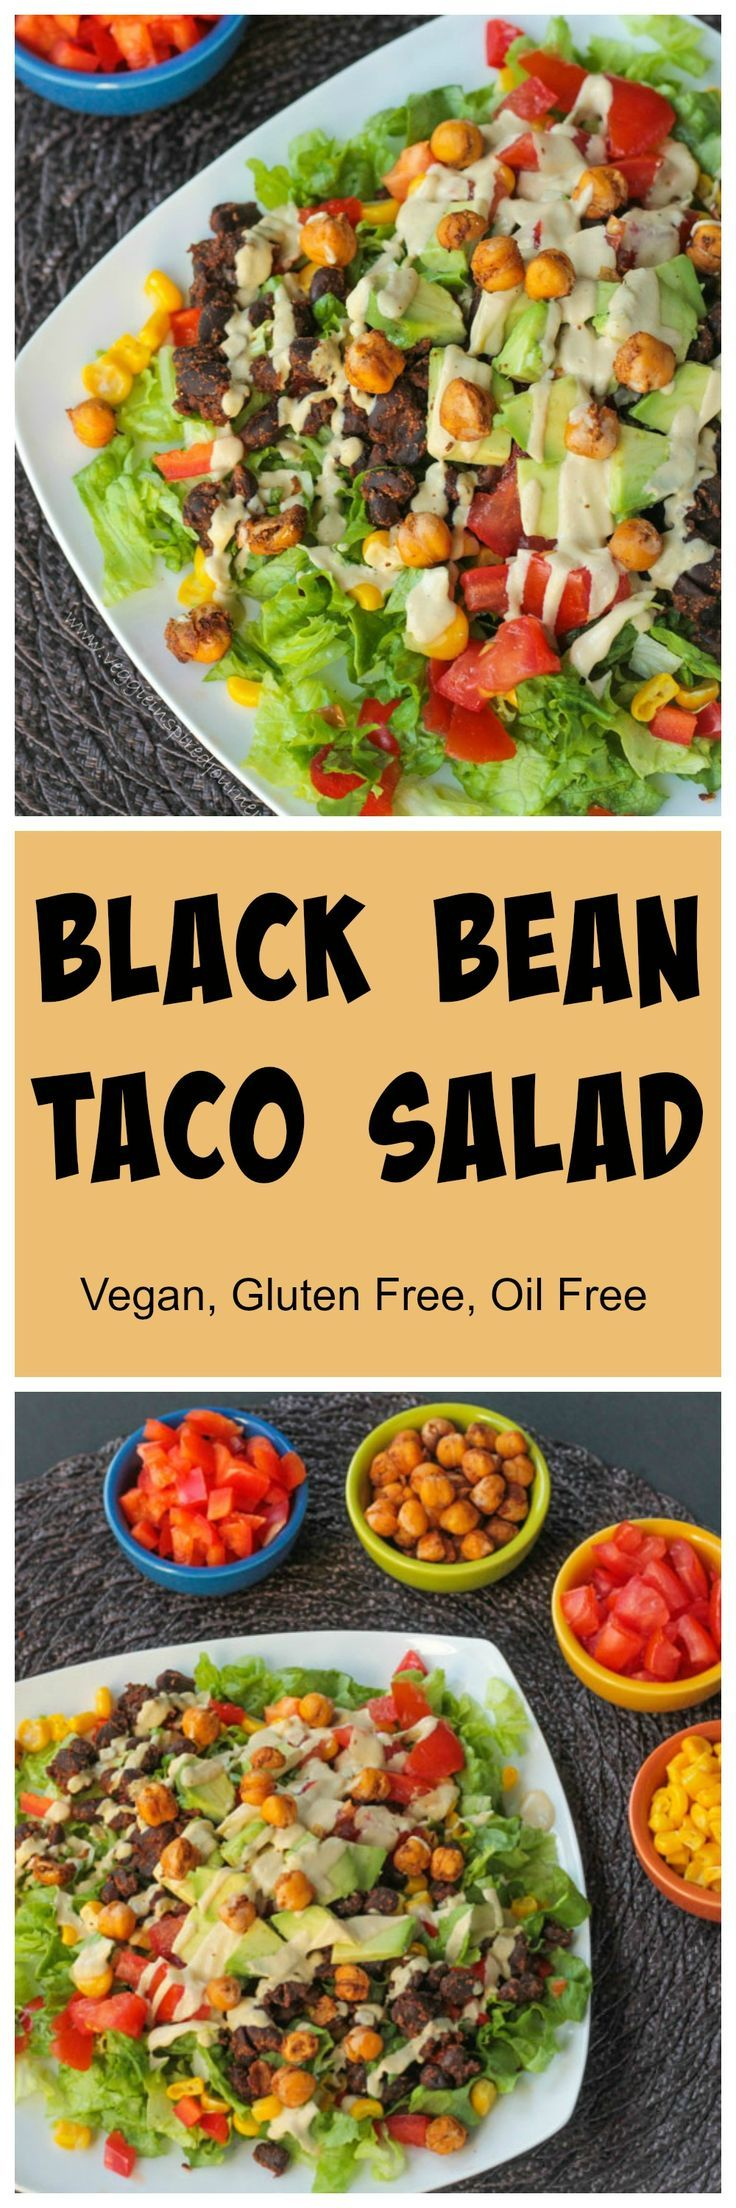 Black Bean Taco Salad - vegan | dairy free | gluten free | quick and easy | oil free | crunchy chickpeas | creamy cumin ranch dressing | meatless monday